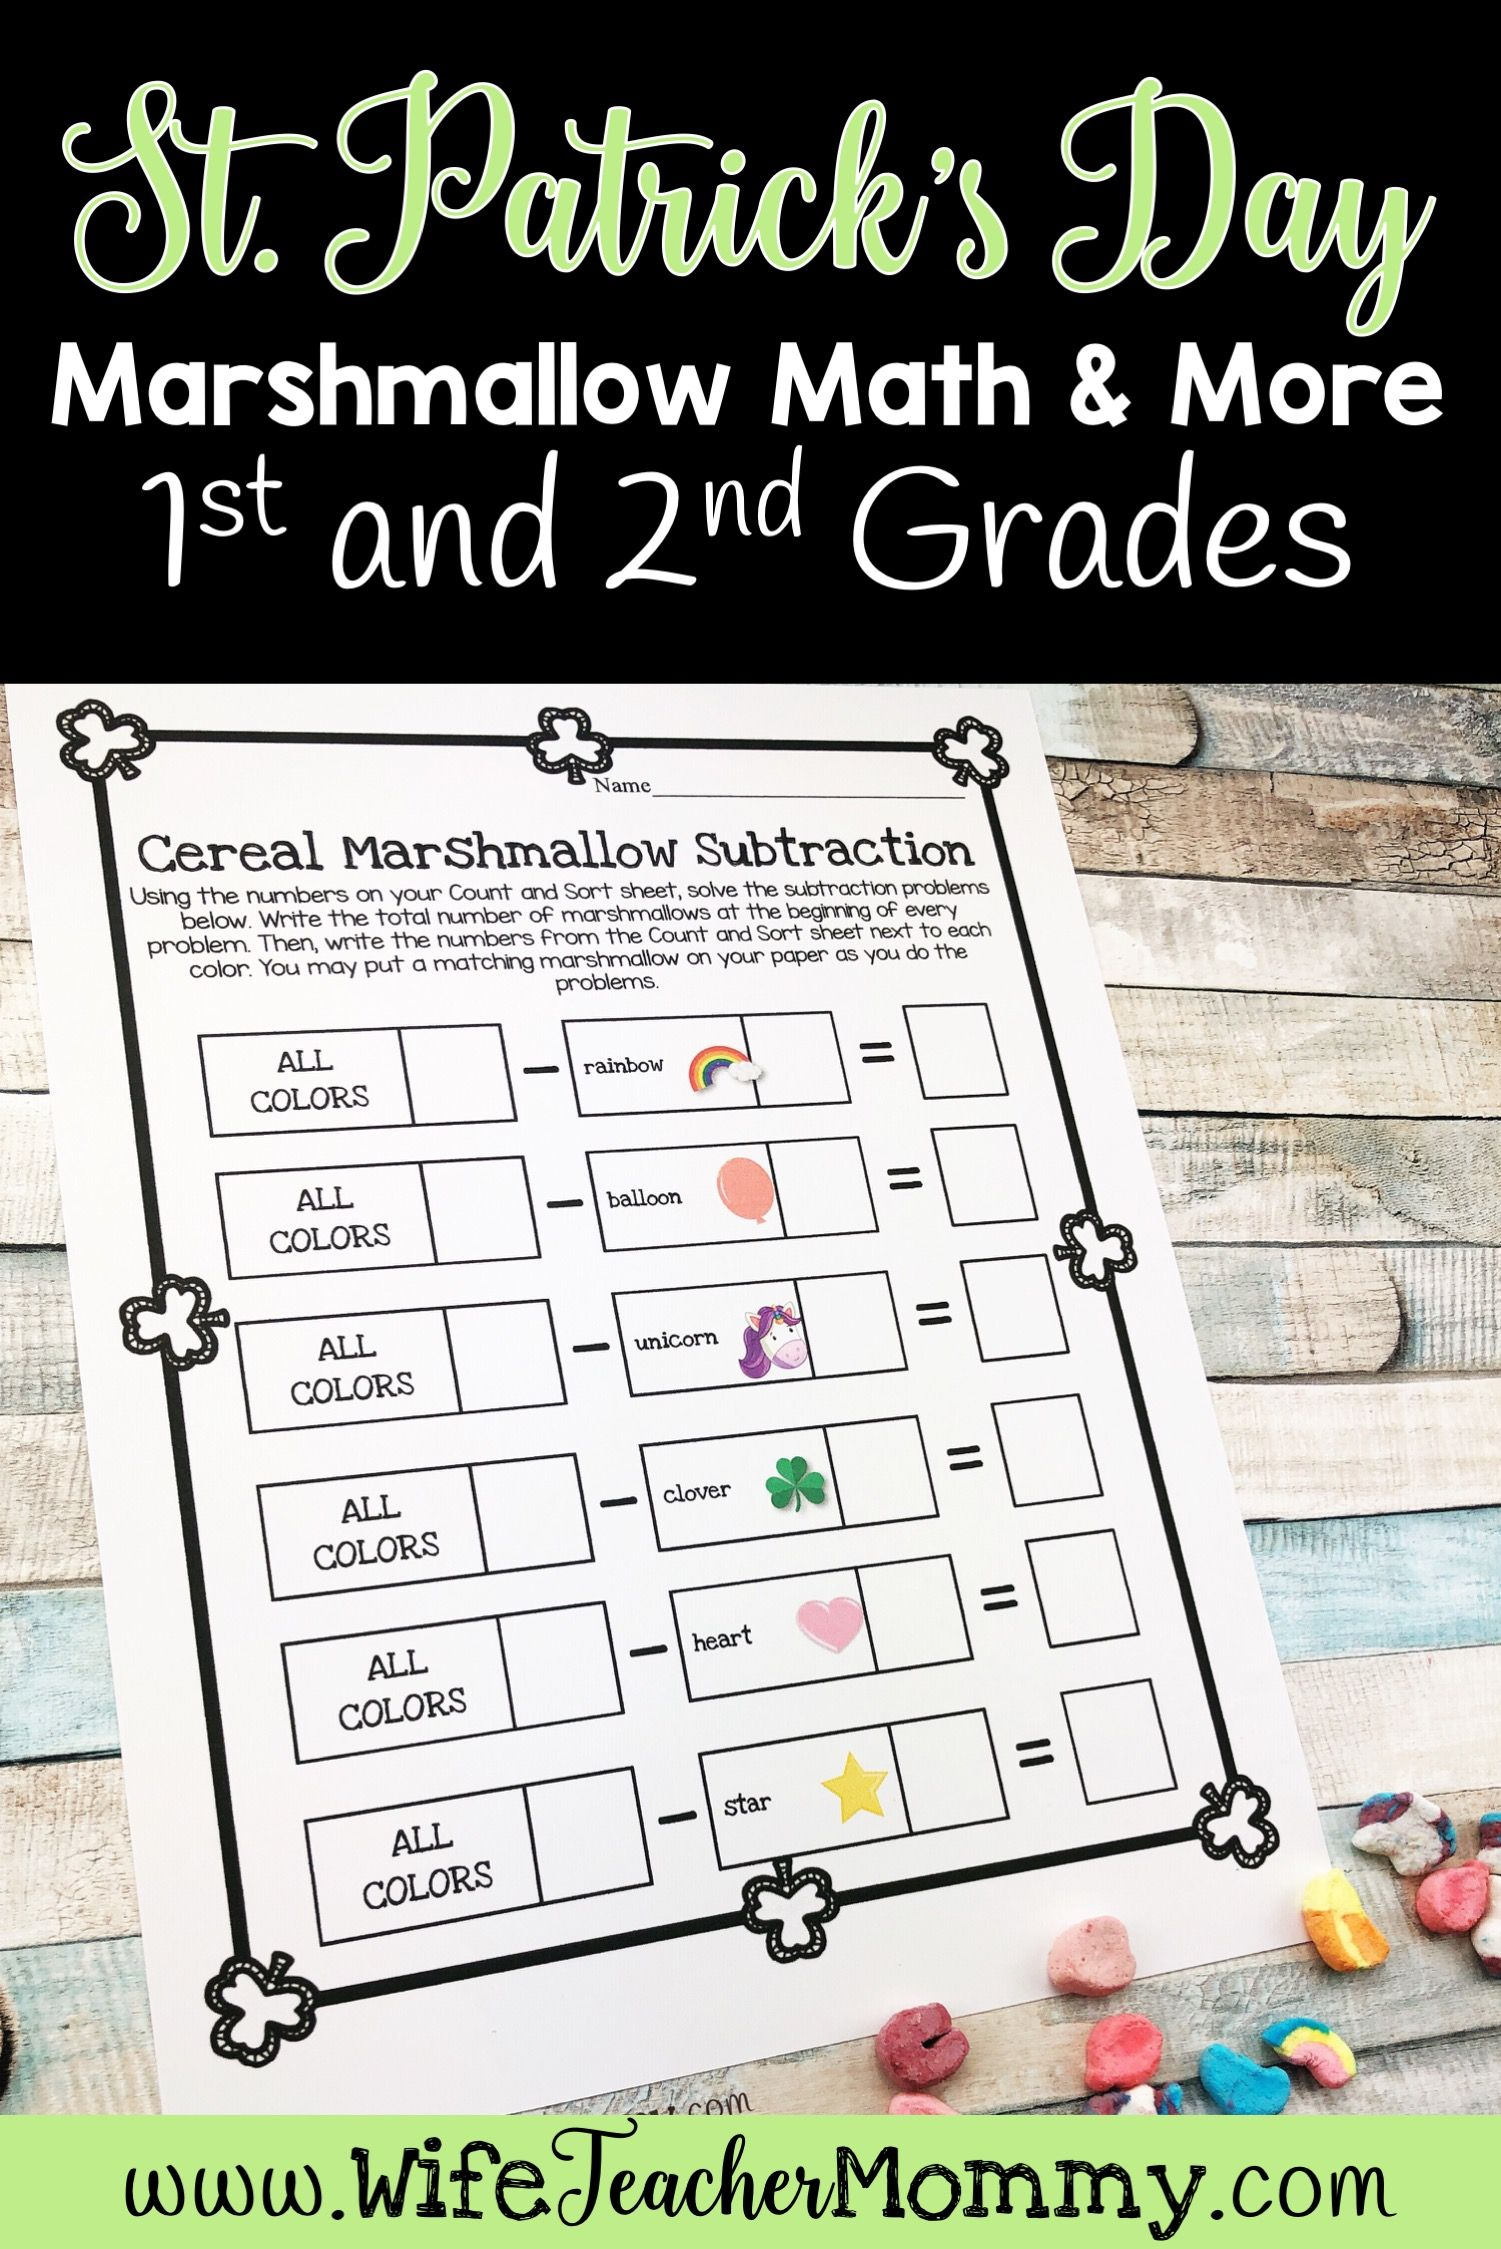 St. Patrick's Day Worksheets Cereal Marshmallow Activities 1st Grade 2nd  Grade   Math activities [ 2249 x 1501 Pixel ]